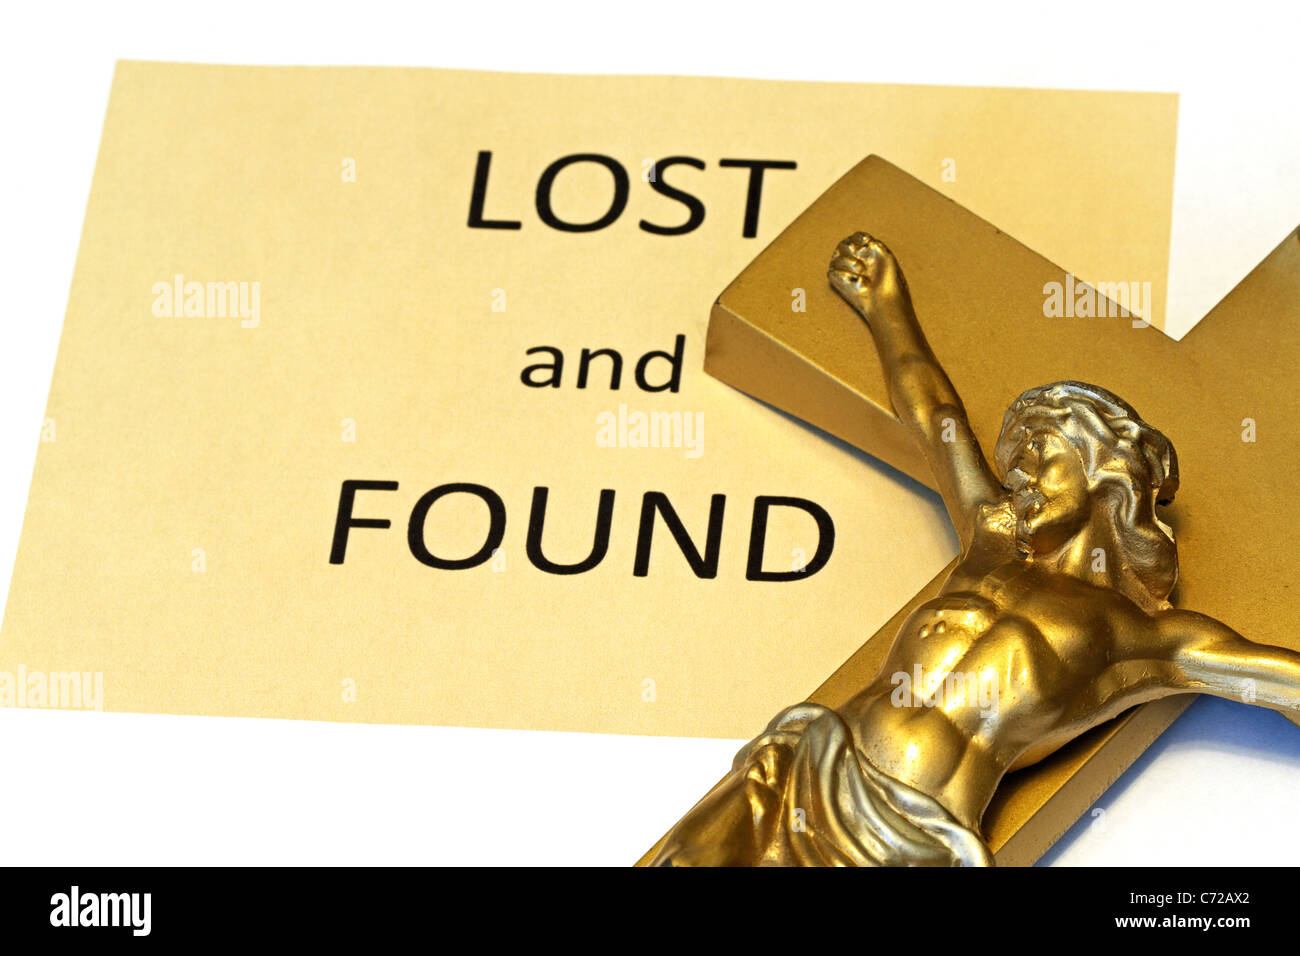 lost and found sign stock photos lost and found sign stock images